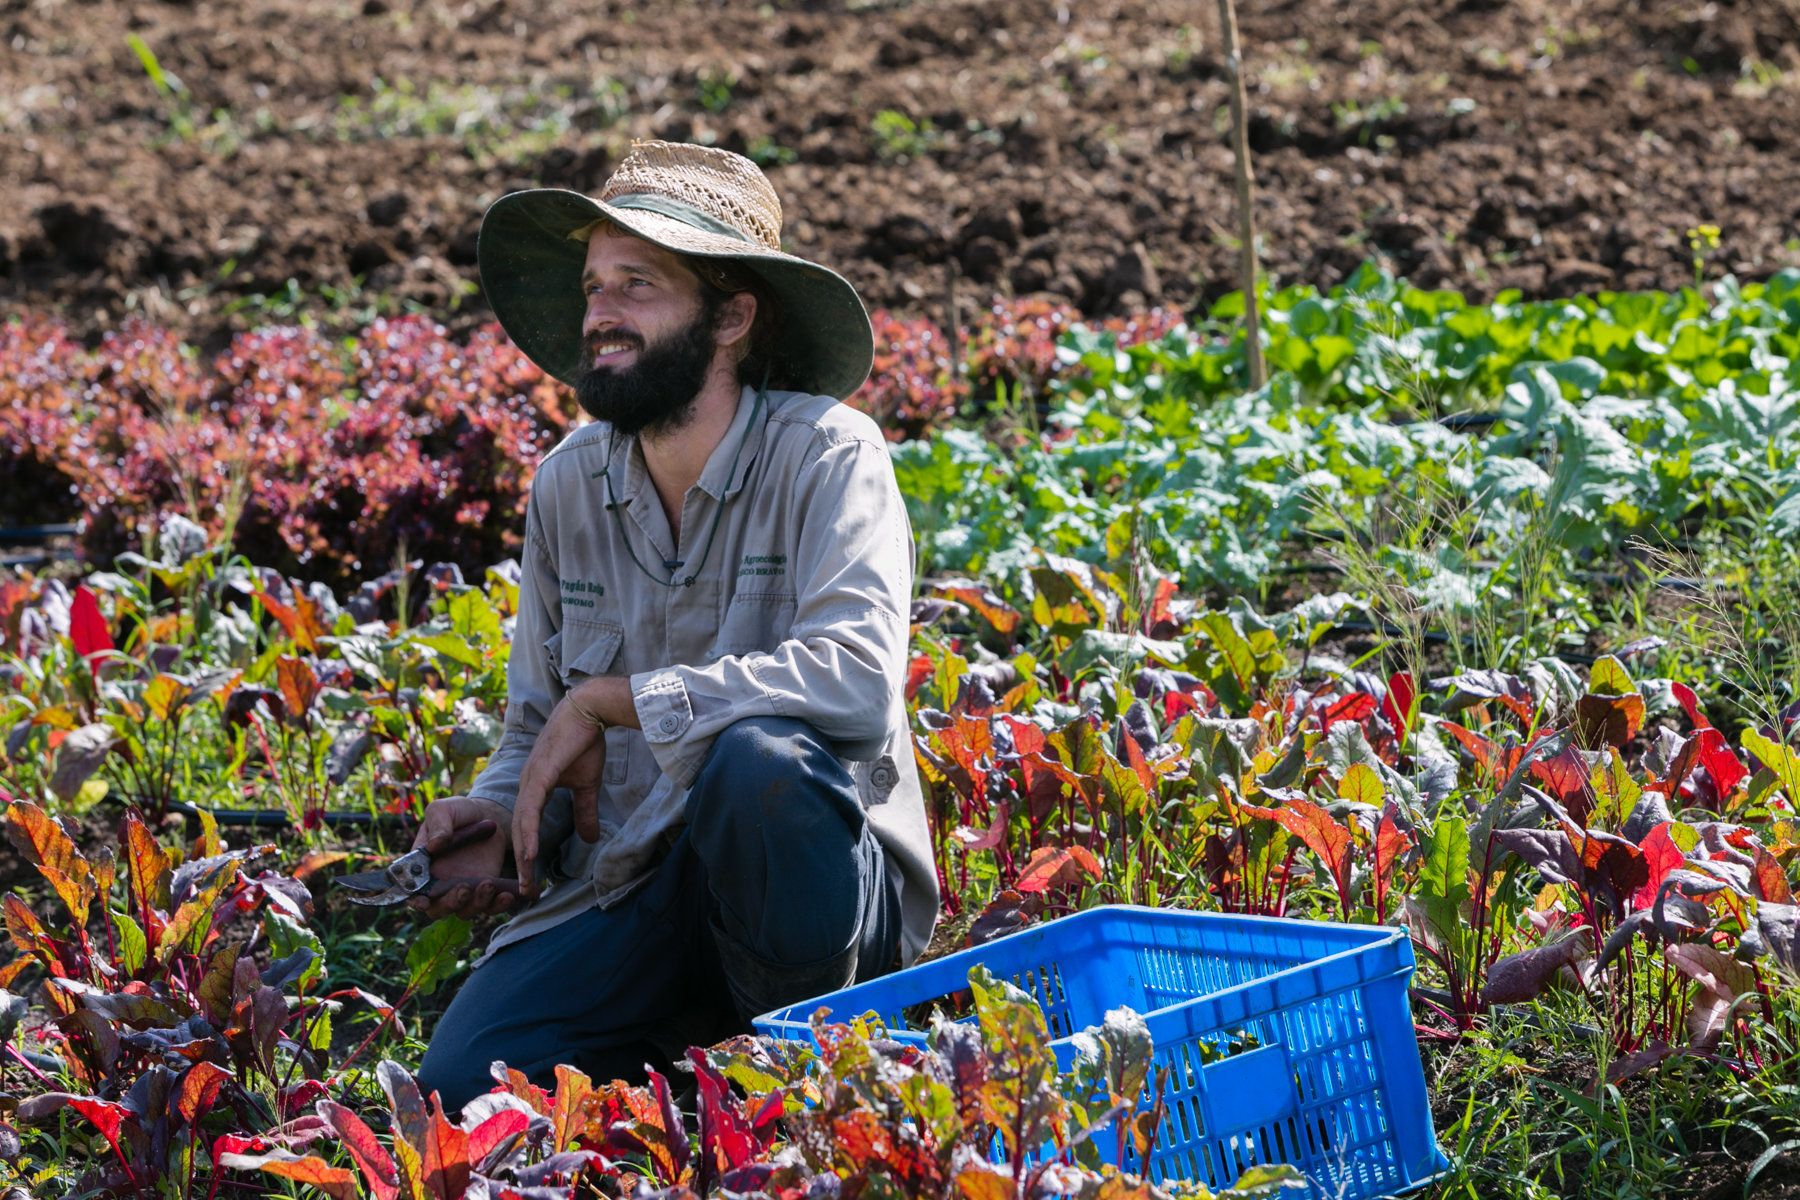 Ian Pagán Roig credits his farm's preservation to a philosophy of sustainability, self-reliance, and resilience.